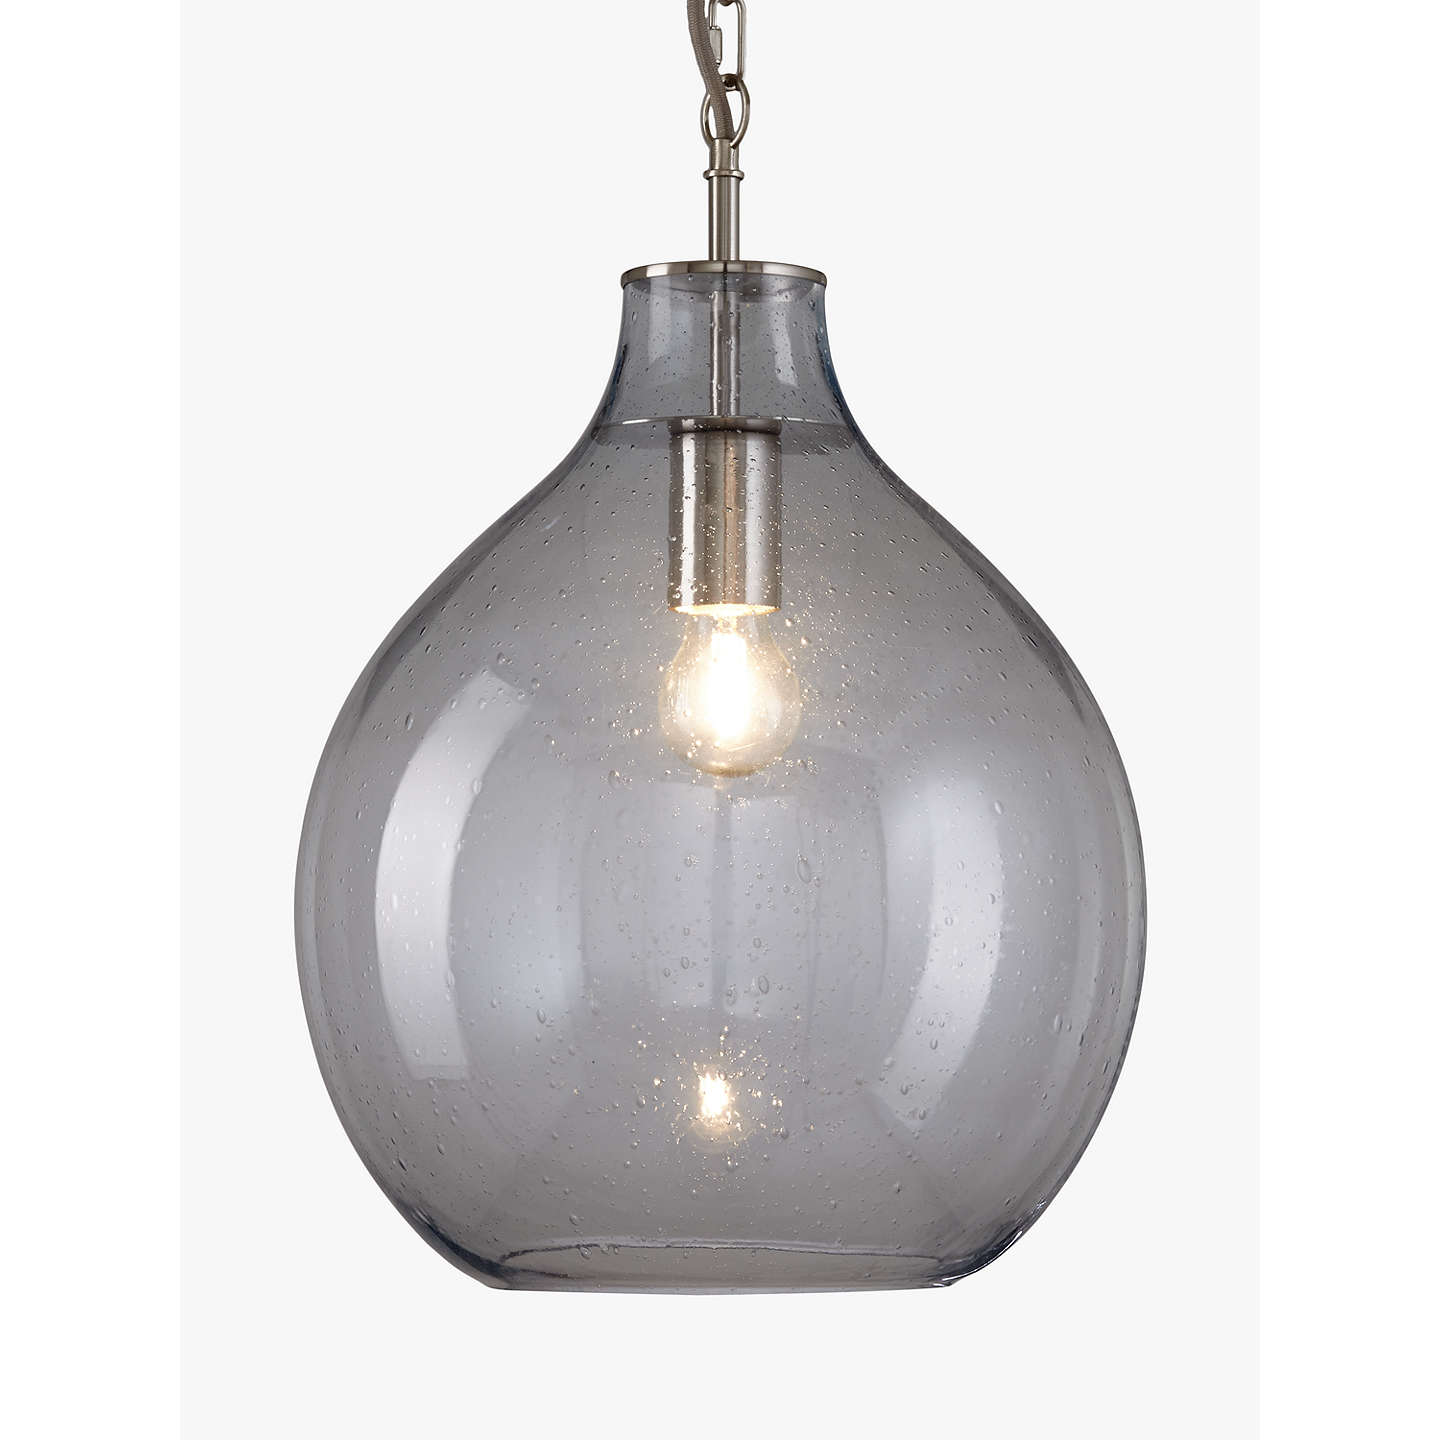 design chandelier light bulb within edison a lamp king milk pendant